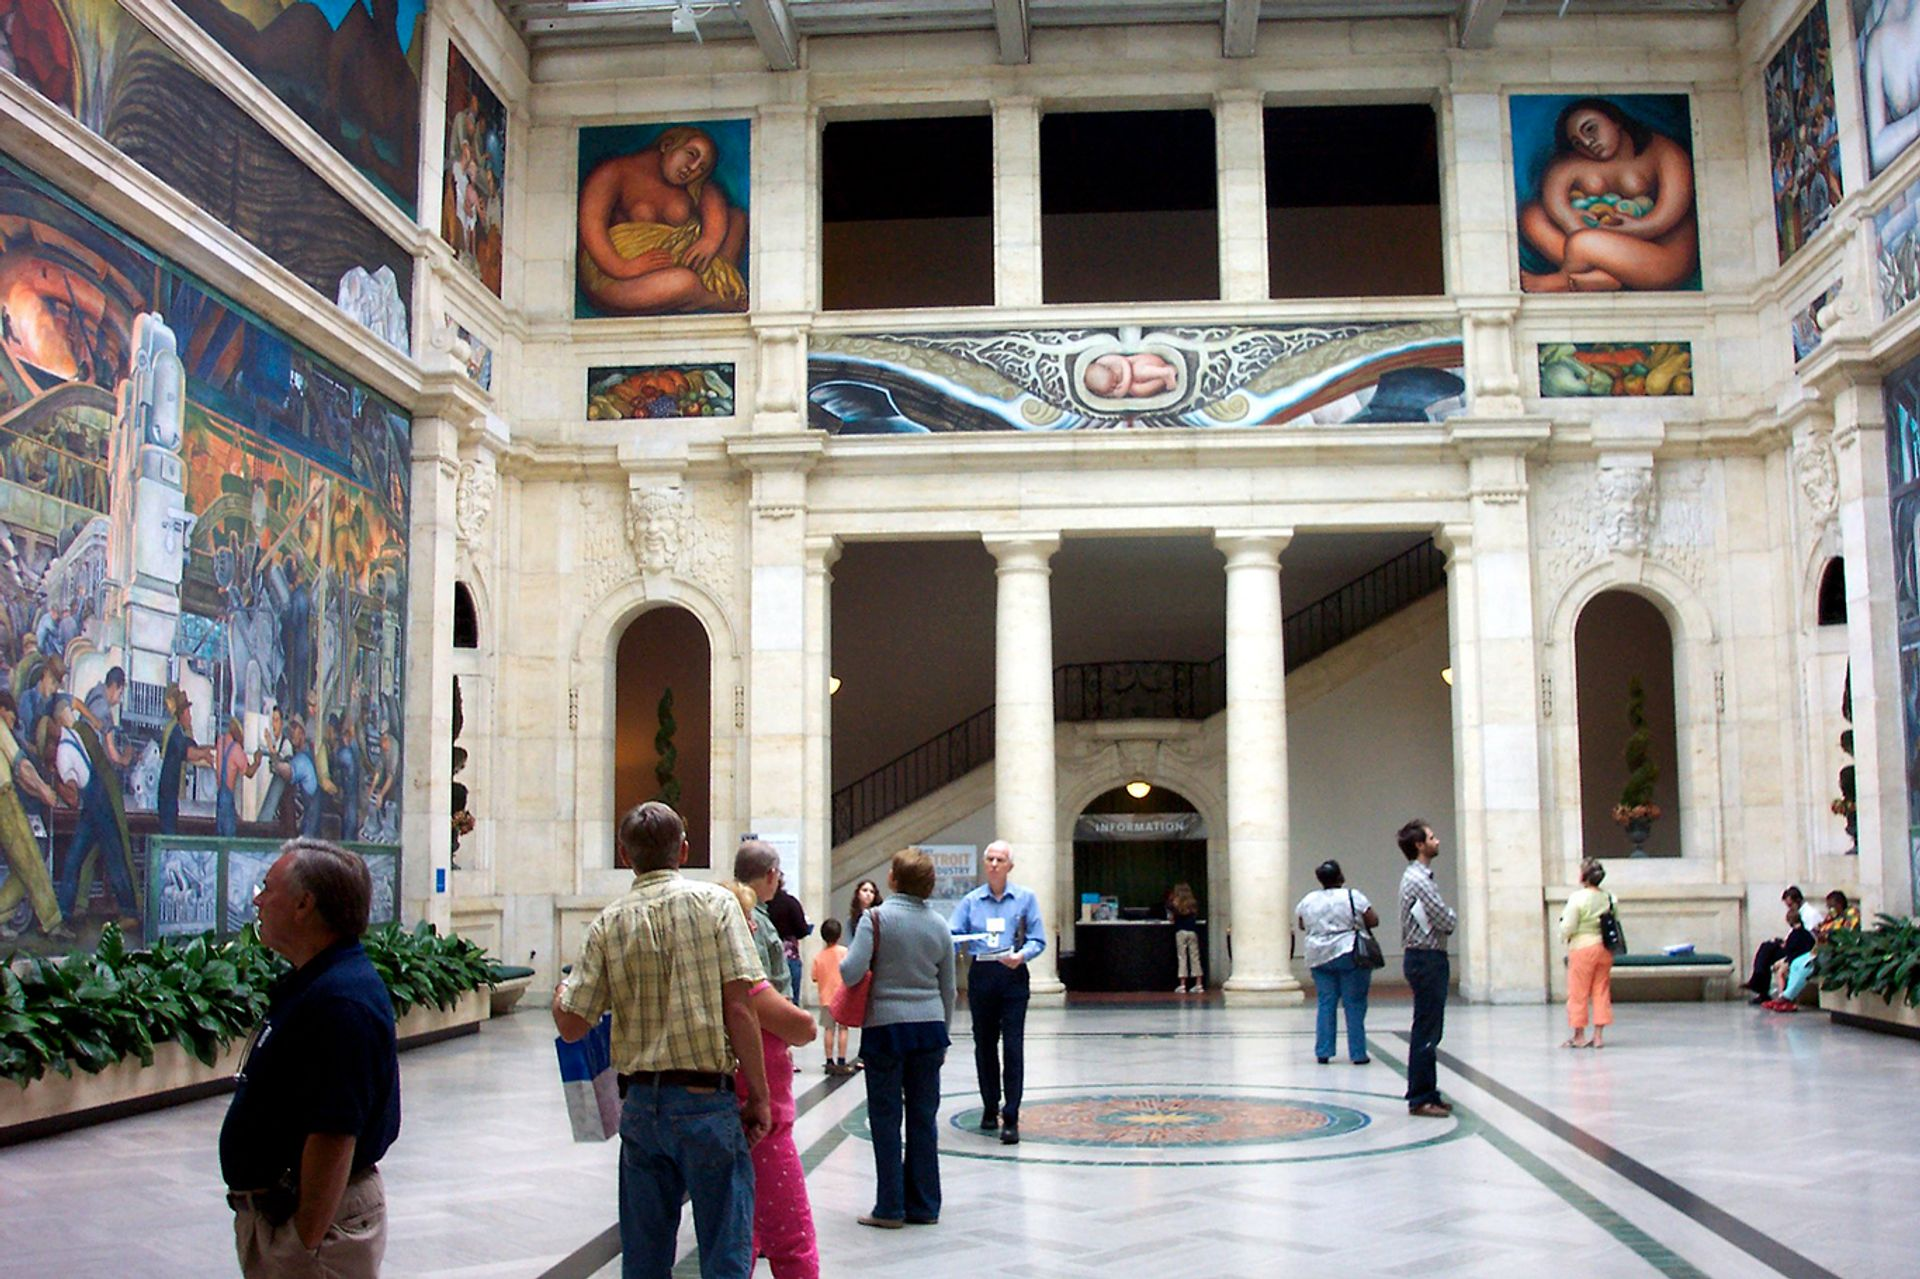 A gallery at the Detroit Institute of Arts featuring frescoes by Diego Rivera